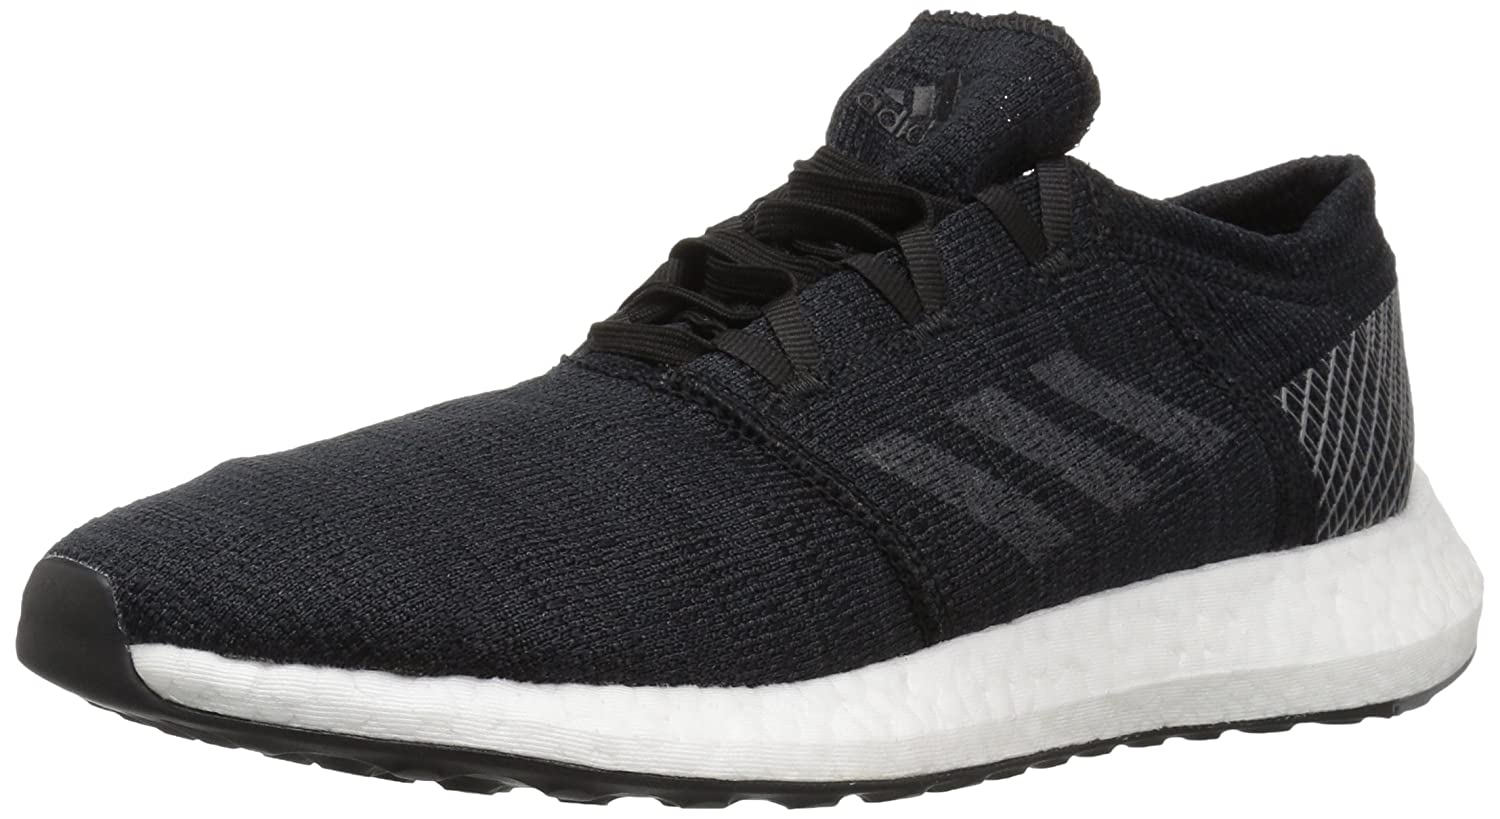 adidas Men's Pureboost Go Running Shoe B077XMJRZV 6.5 D(M) US|Black/Grey/Grey